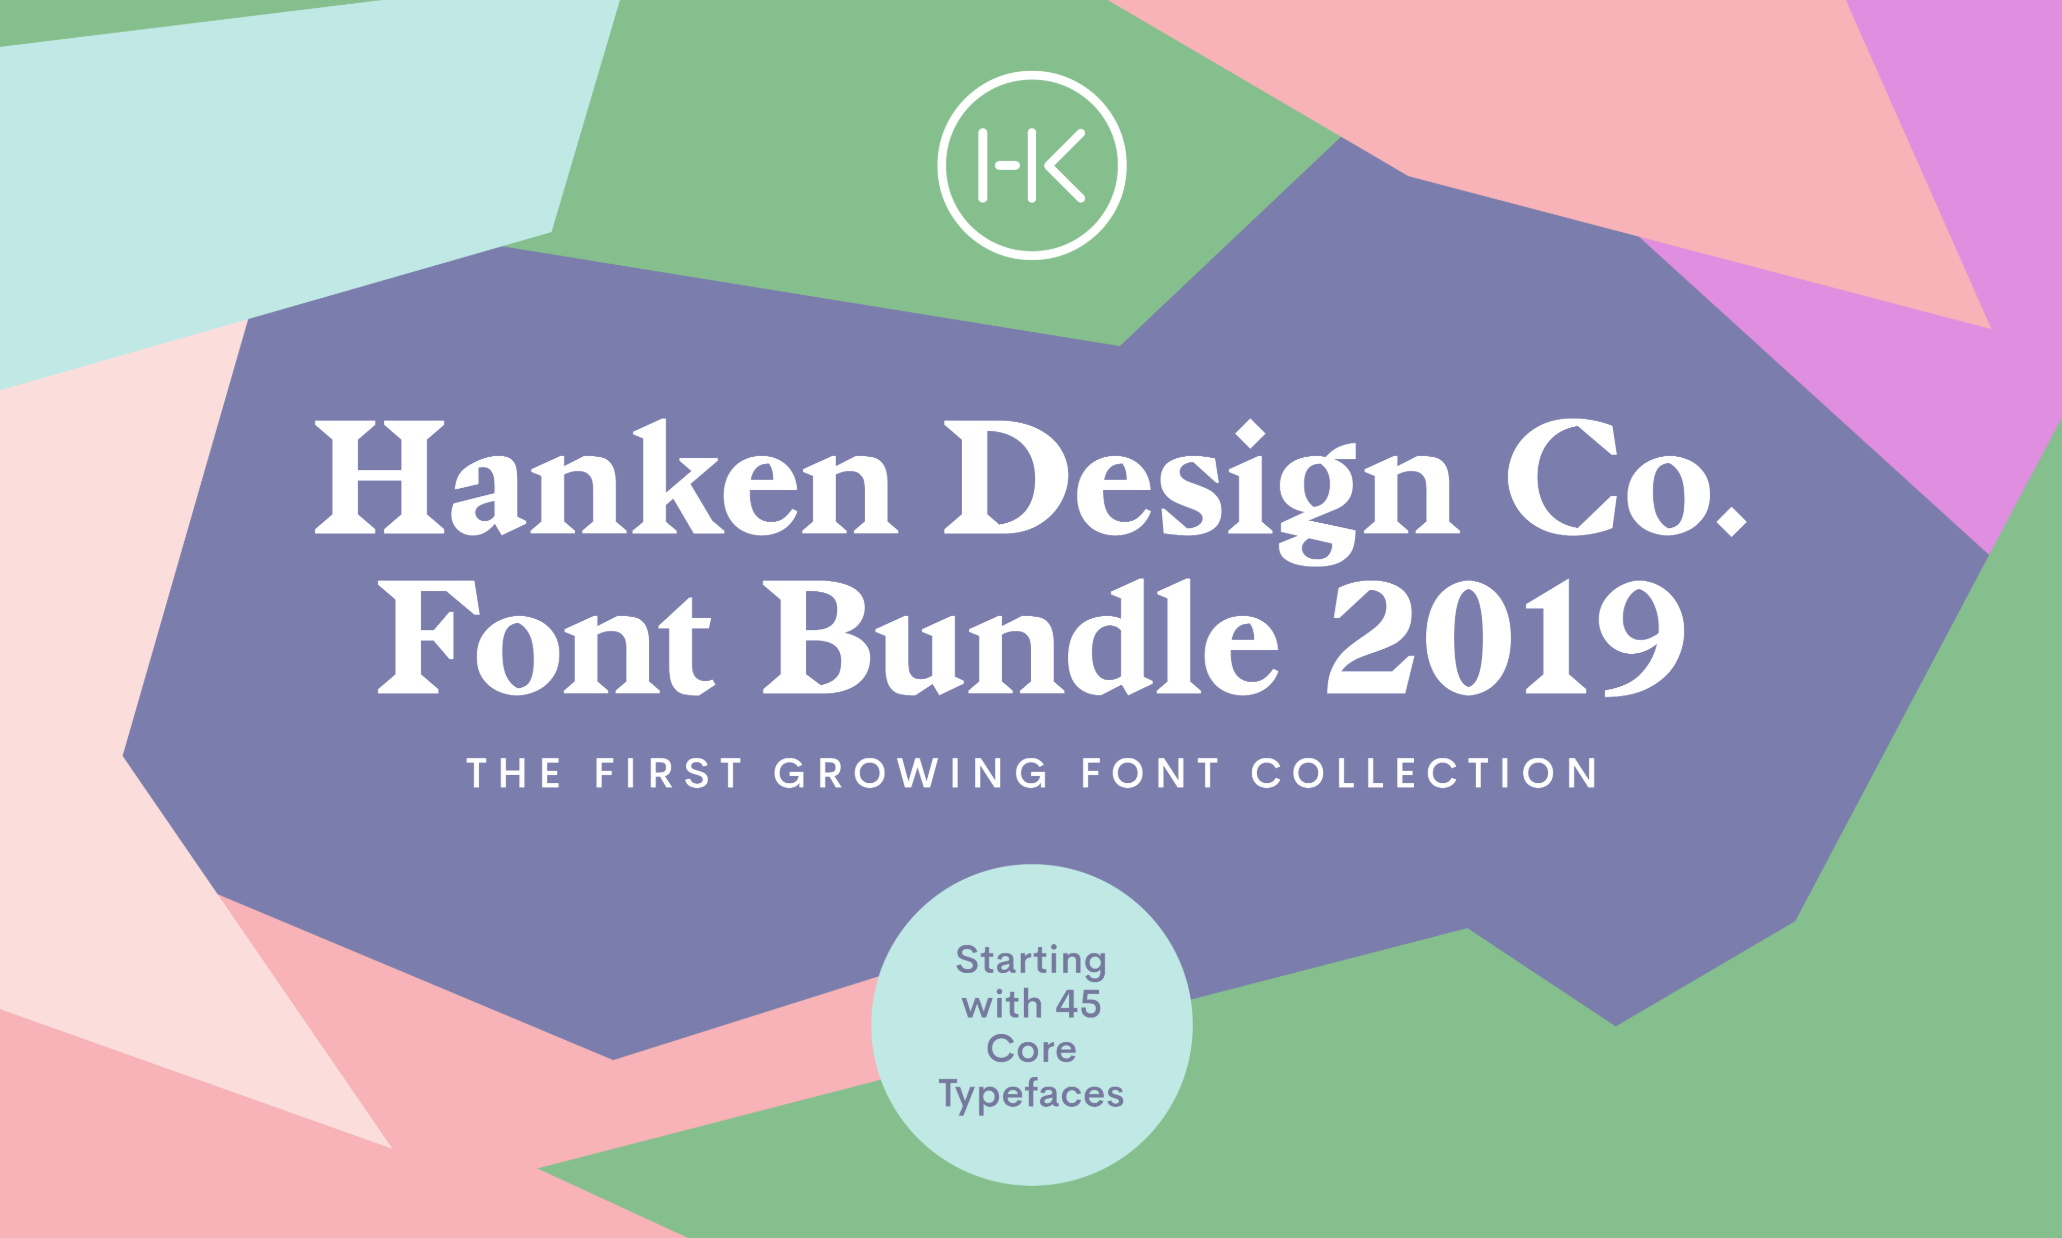 A bundle of 45 families from Hanken Design is available for only $120